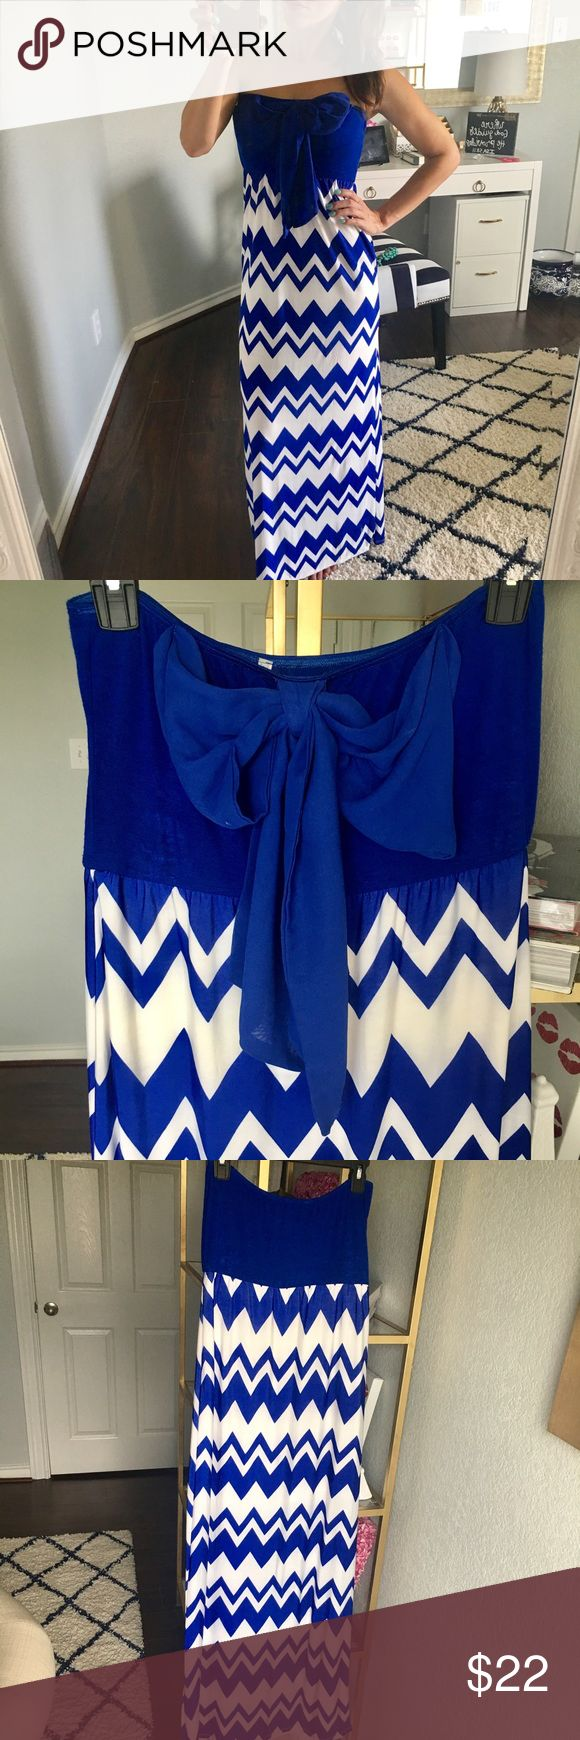 Blue Chevron Dress This adorable blue and white Chevron strapless maxi dress is the perfect package complete with a bow 🎀 Worn to take pictures on the Florida beaches 🌊 // No trades, please💋 Rachel Kate Dresses Maxi